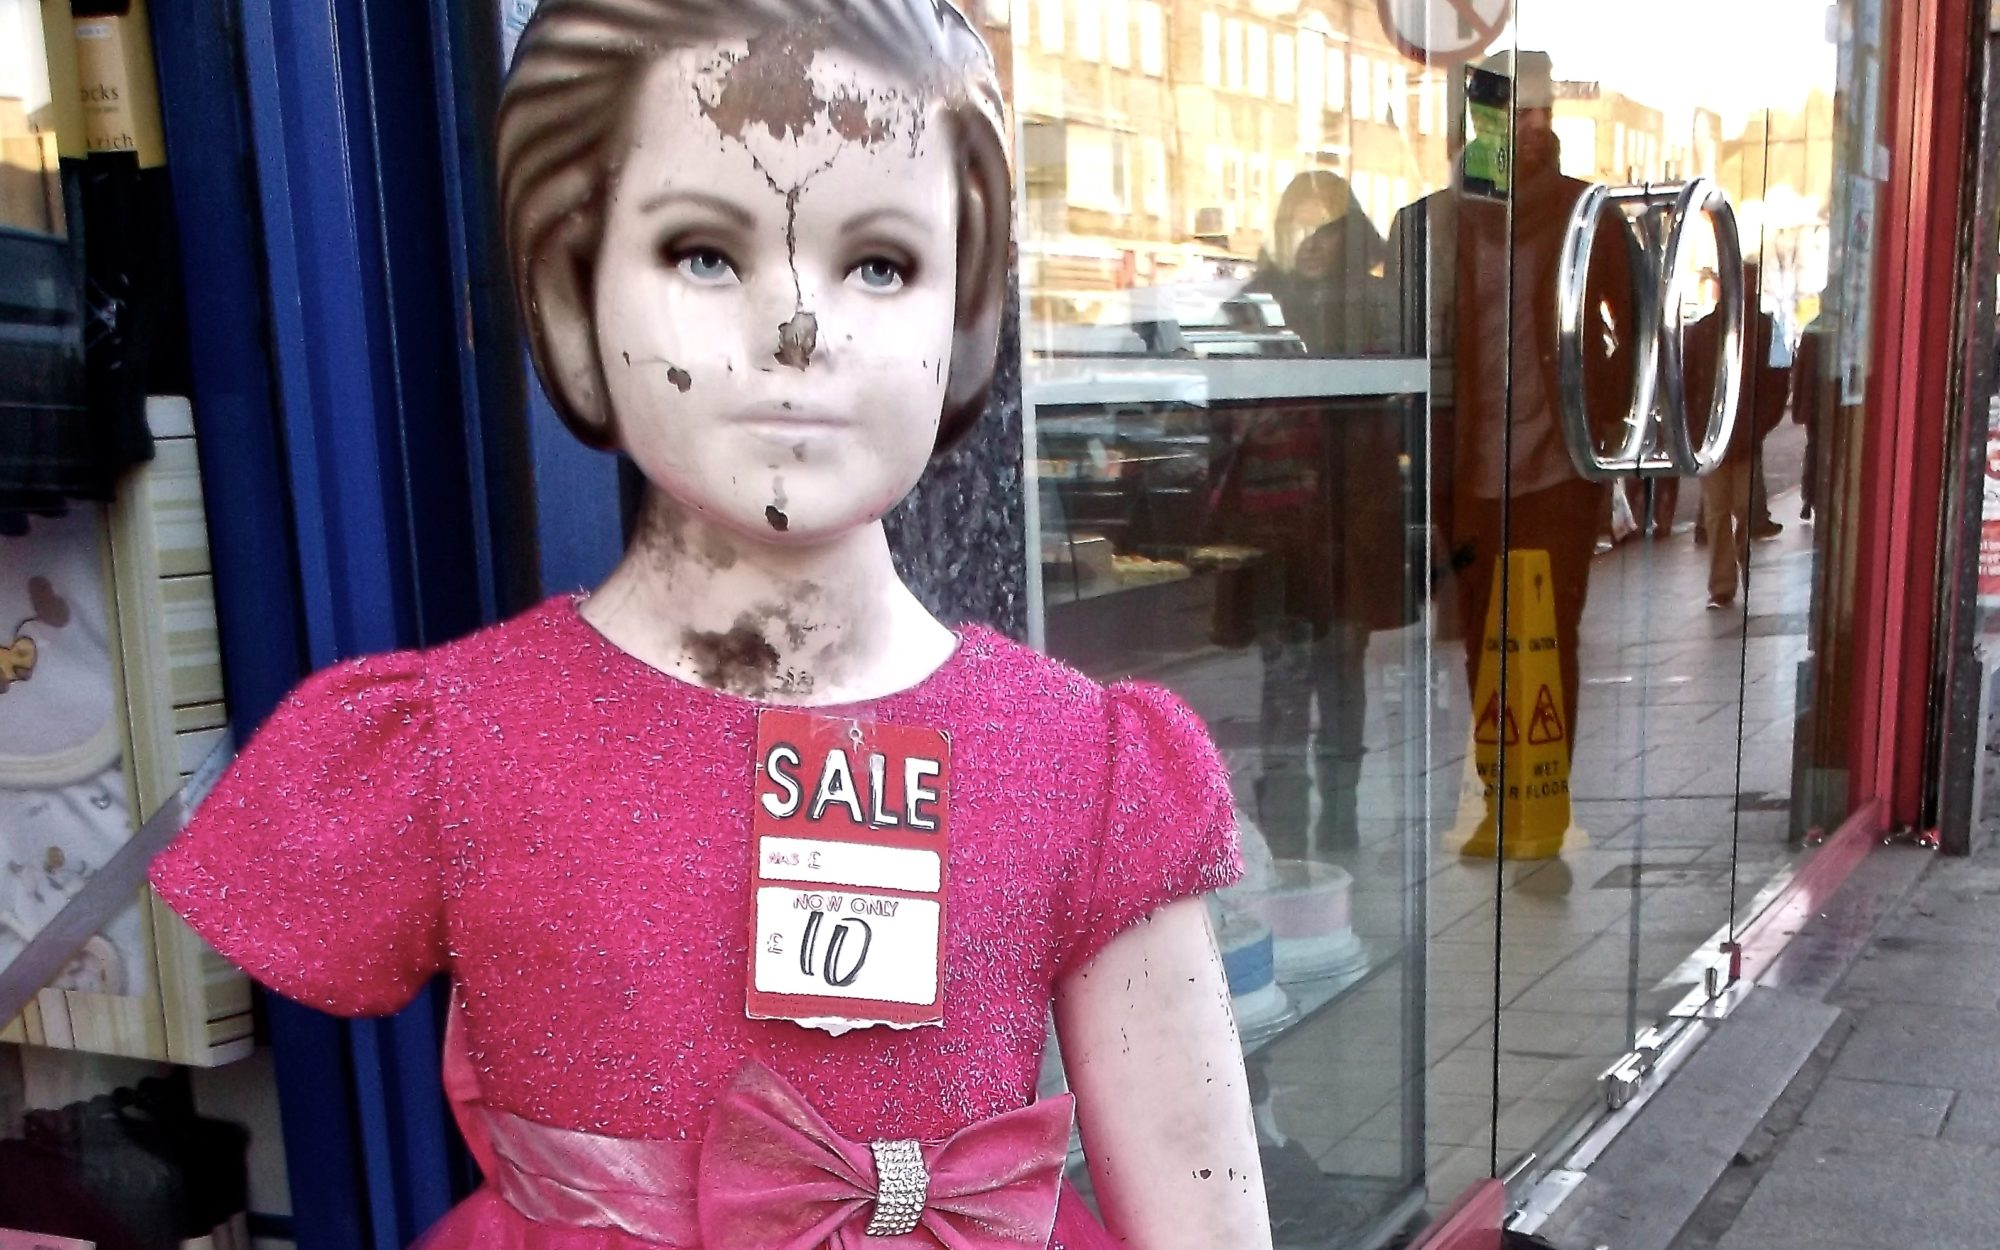 A defaced mannequin girl stands outside a shop, wearing a pink dress and a pricetag.